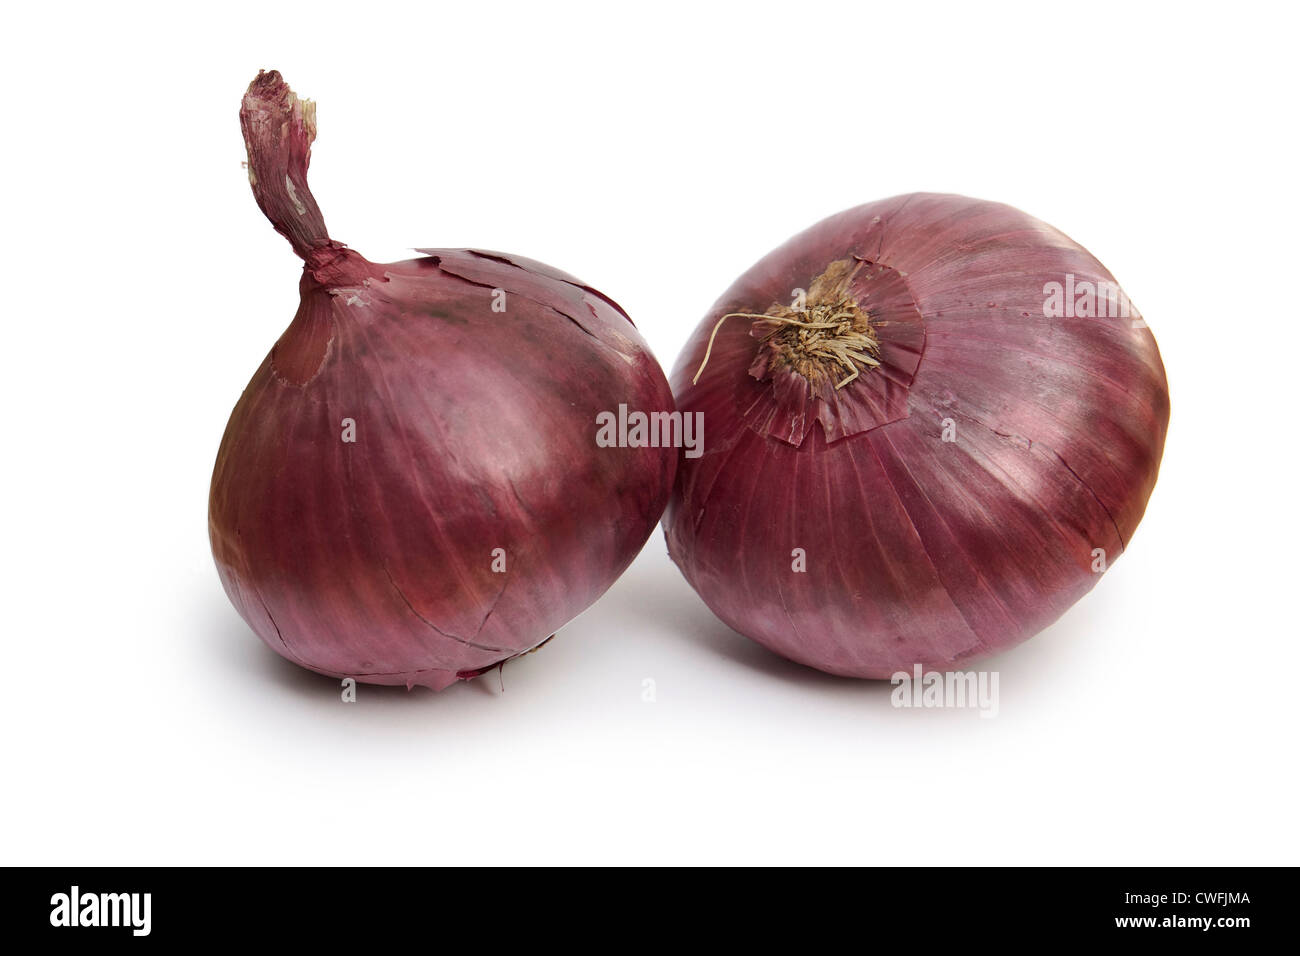 Onion, Red Onions - Stock Image